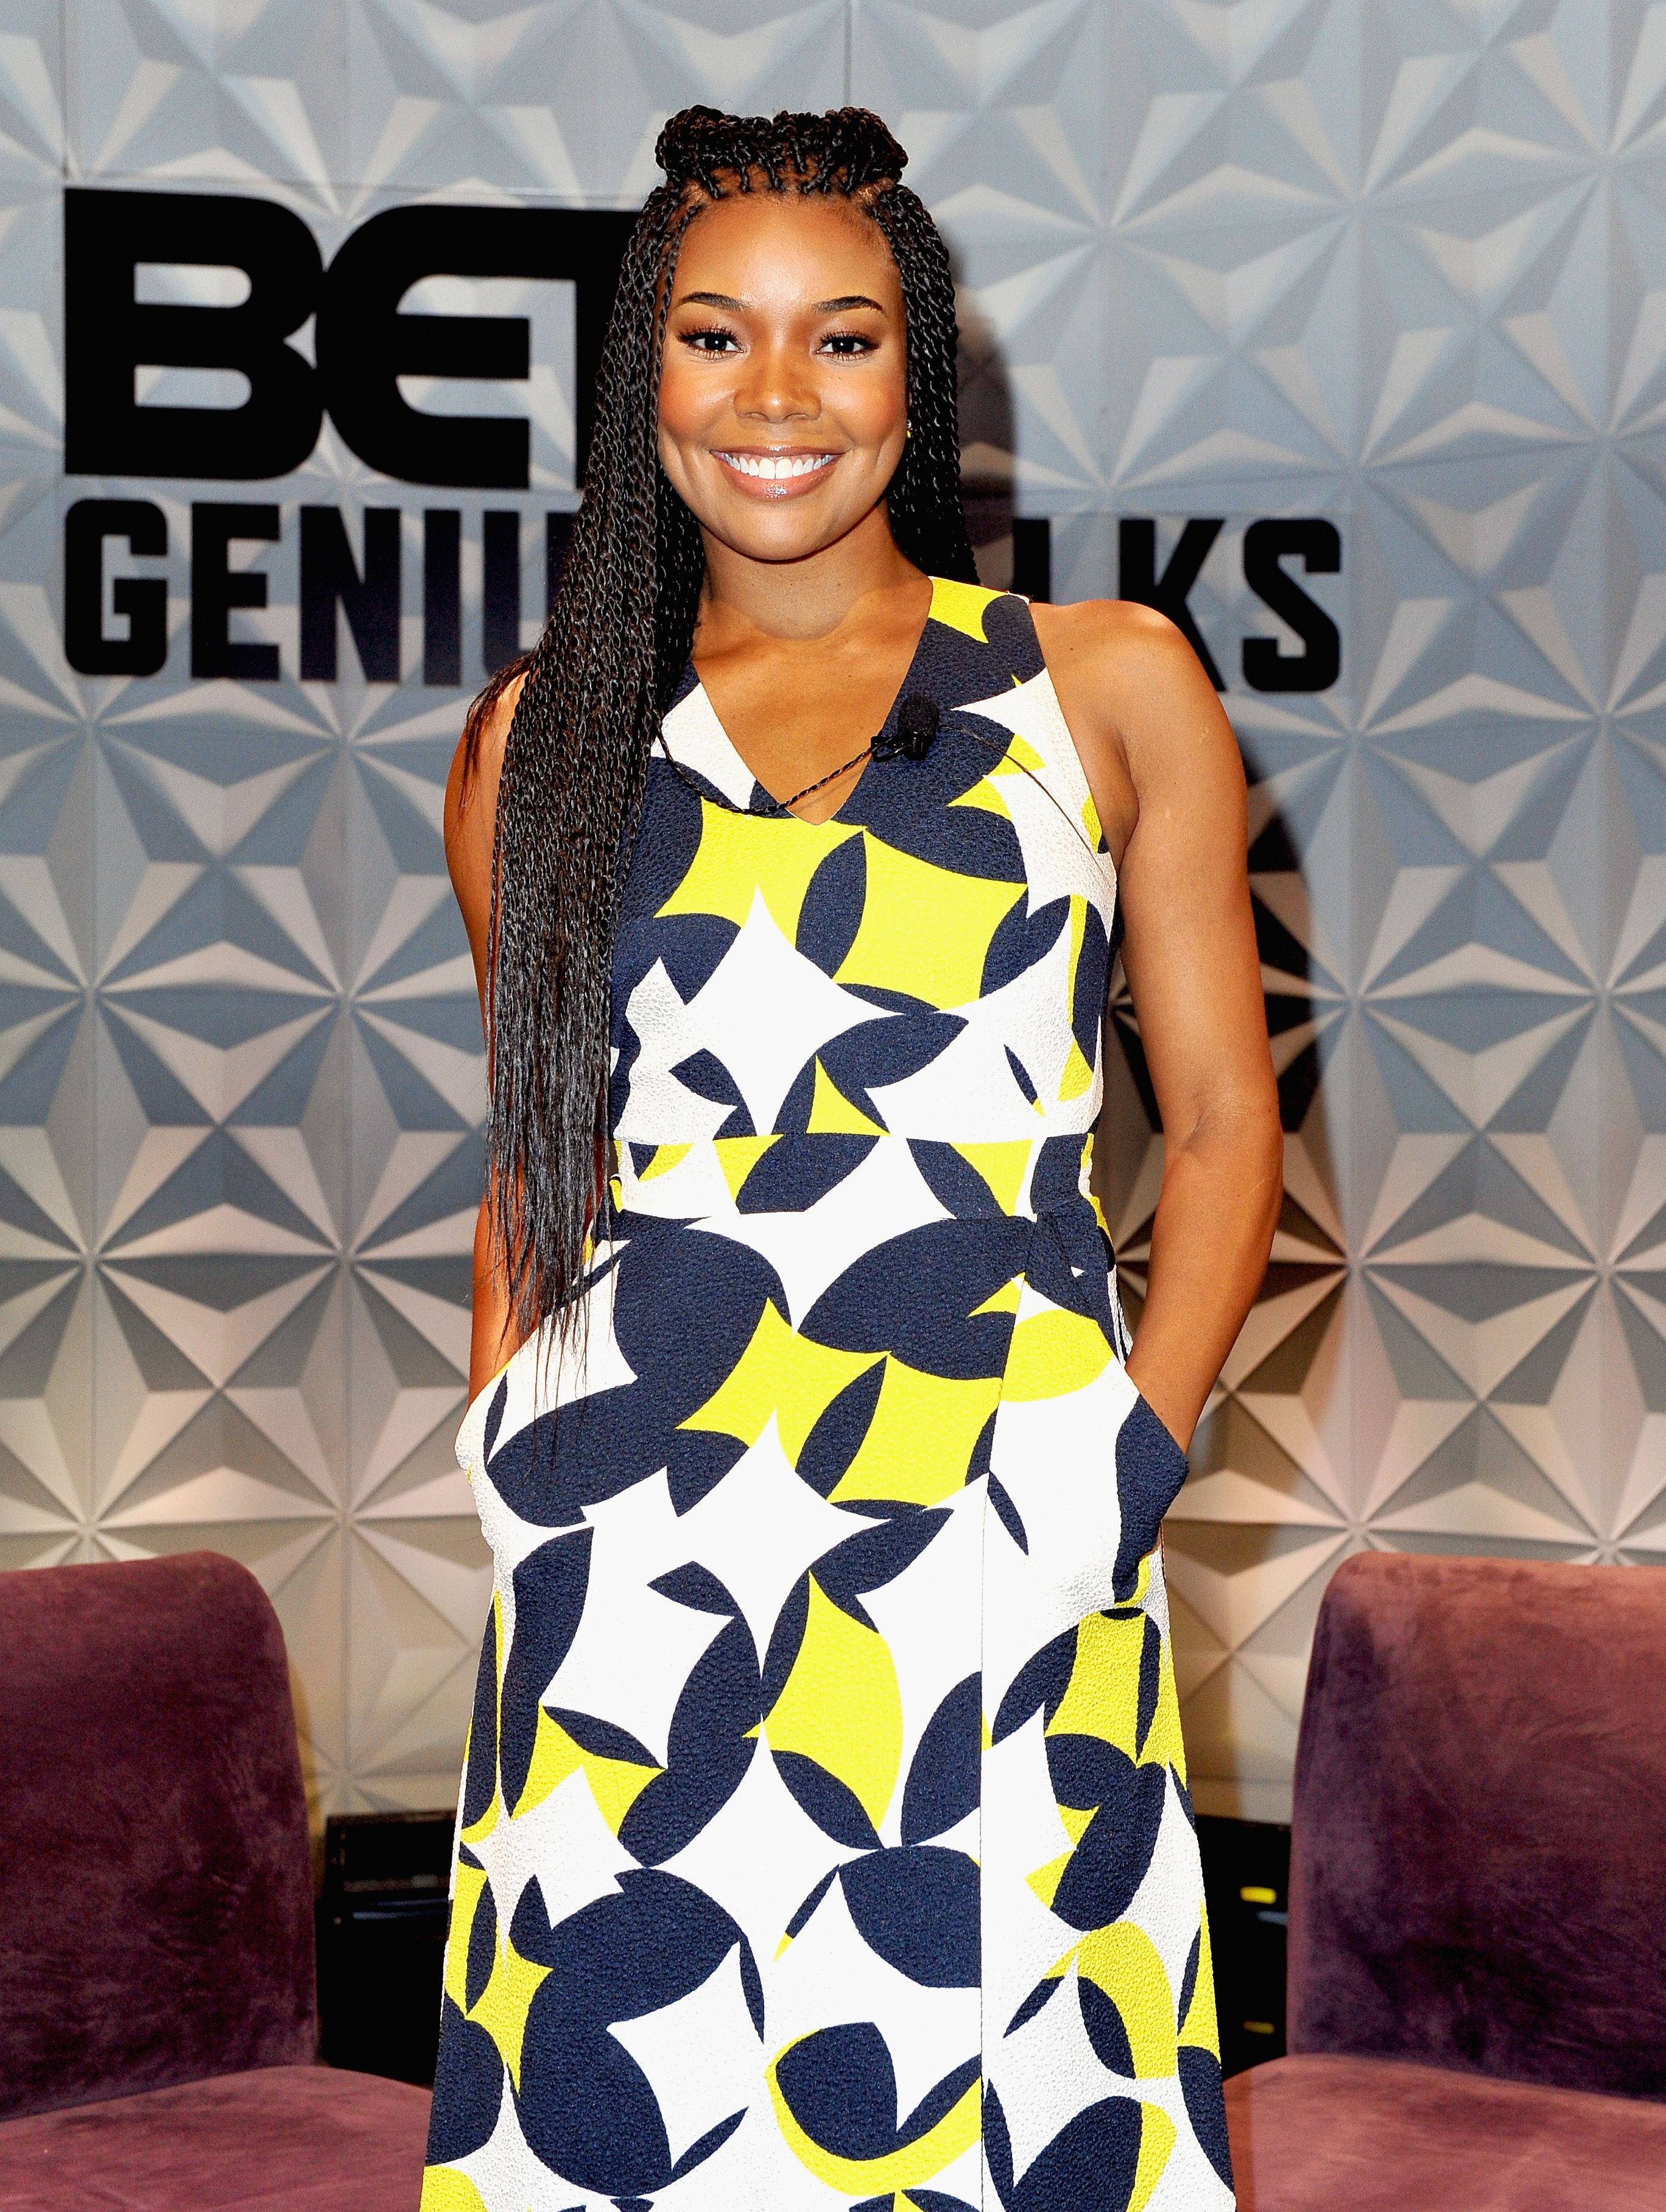 Gabrielle Union during the Genius Talks sponsored by AT&T during the 2016 BET Experience on June 25, 2016 in Los Angeles, California. | Source: Getty Images